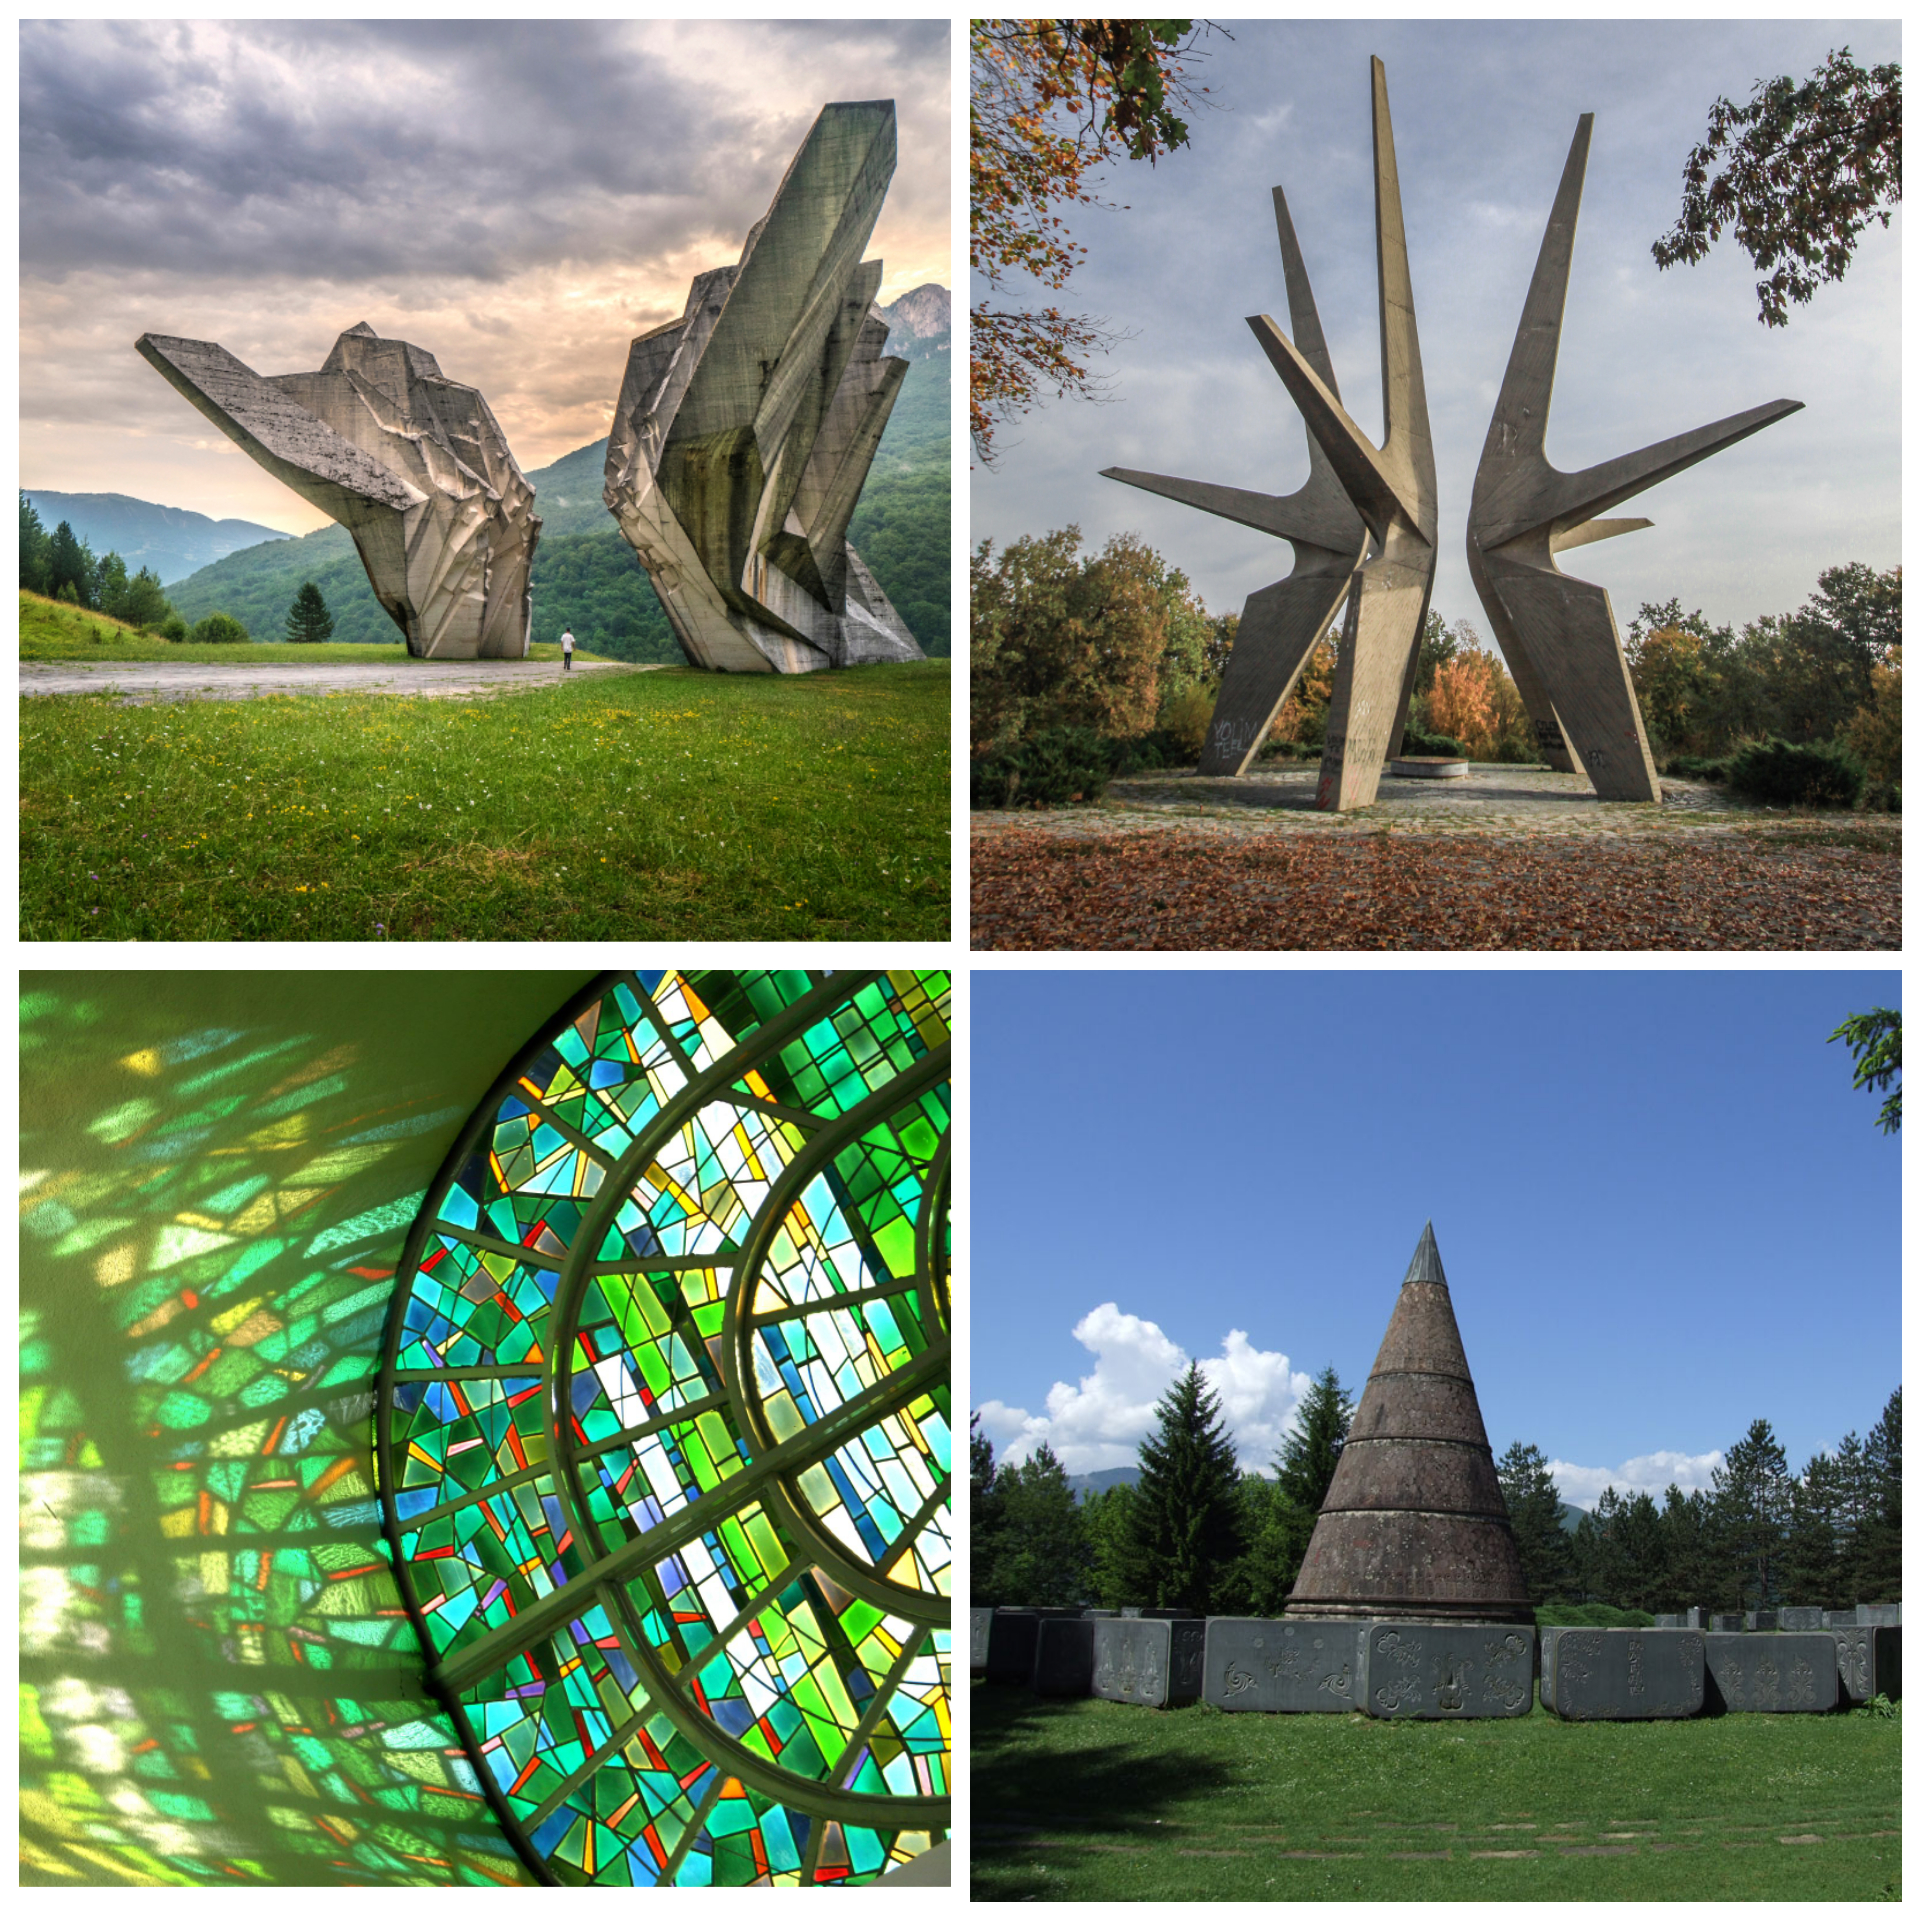 Balkan Monumental Trail encompasses region's iconic World War II (WWII) monuments